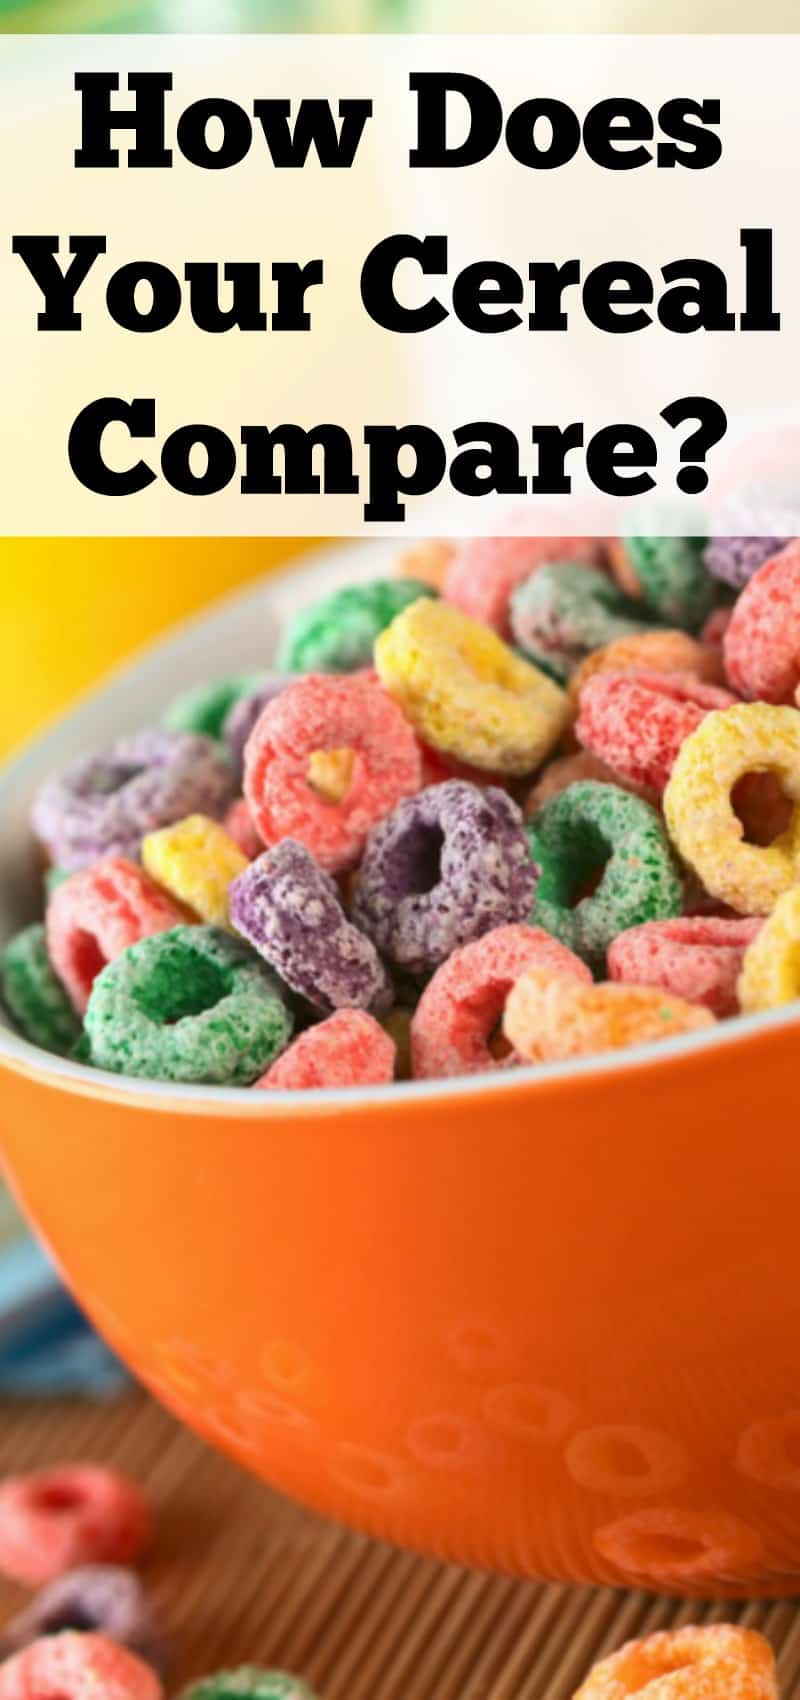 How Does Your Cereal Compare